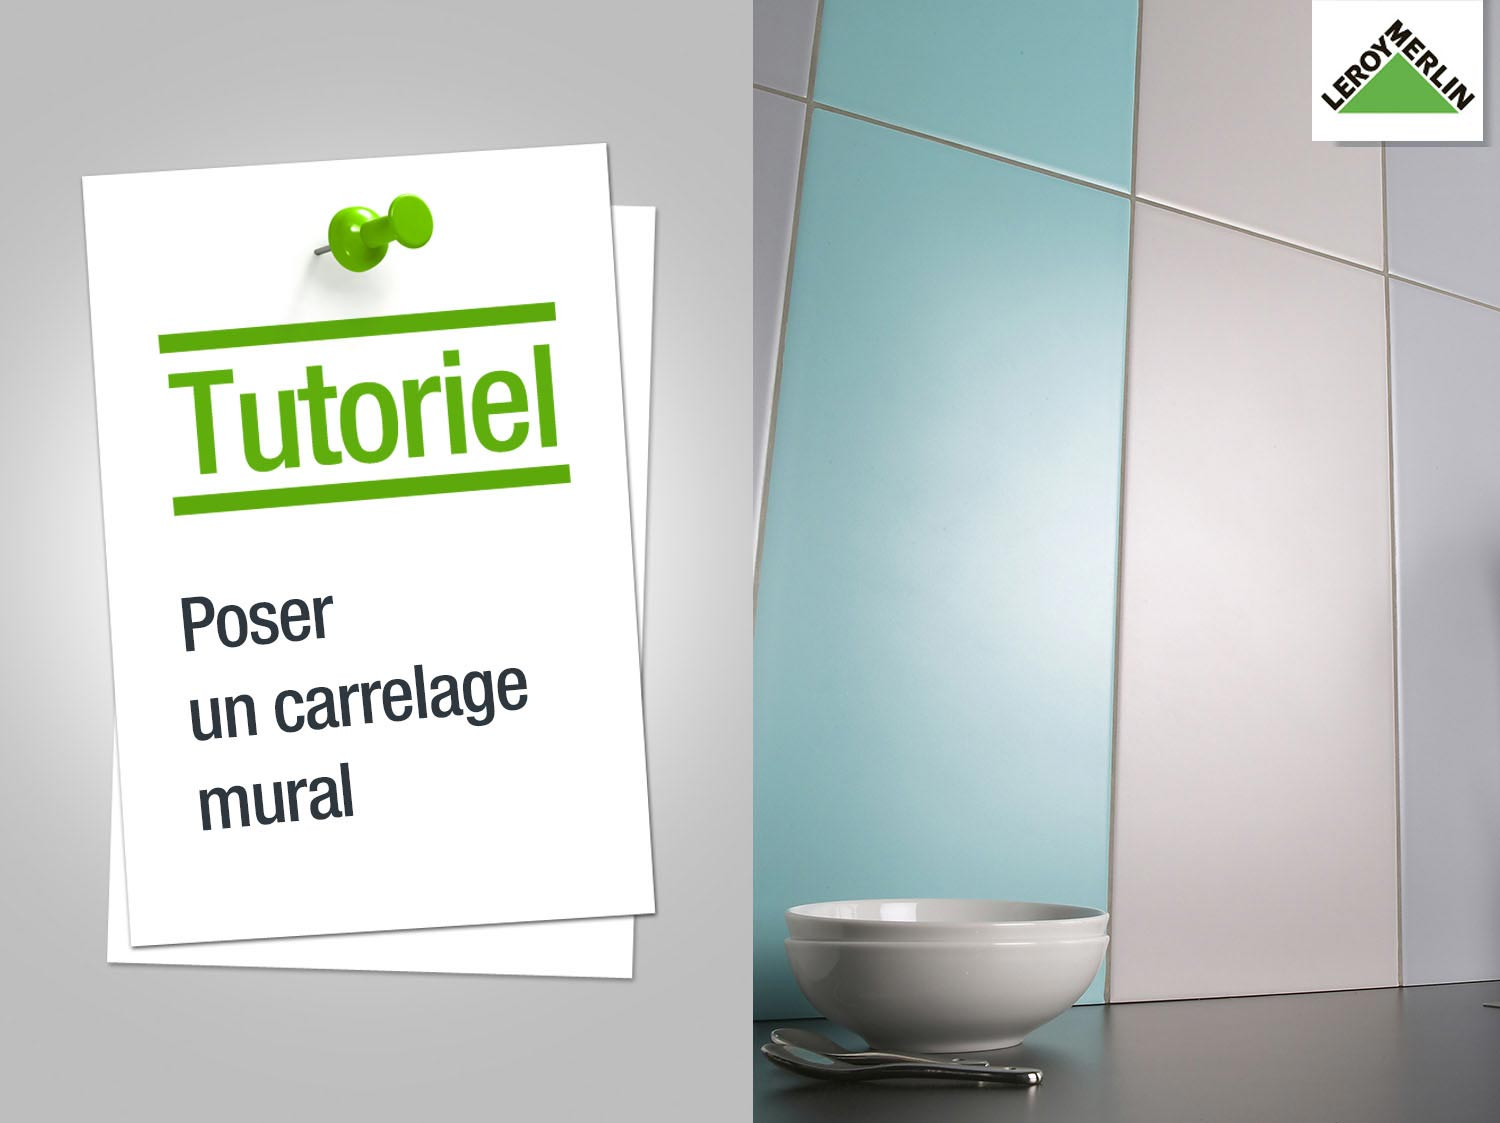 Comment poser un carrelage salle de bain for Pose carrelage sur carrelage mural